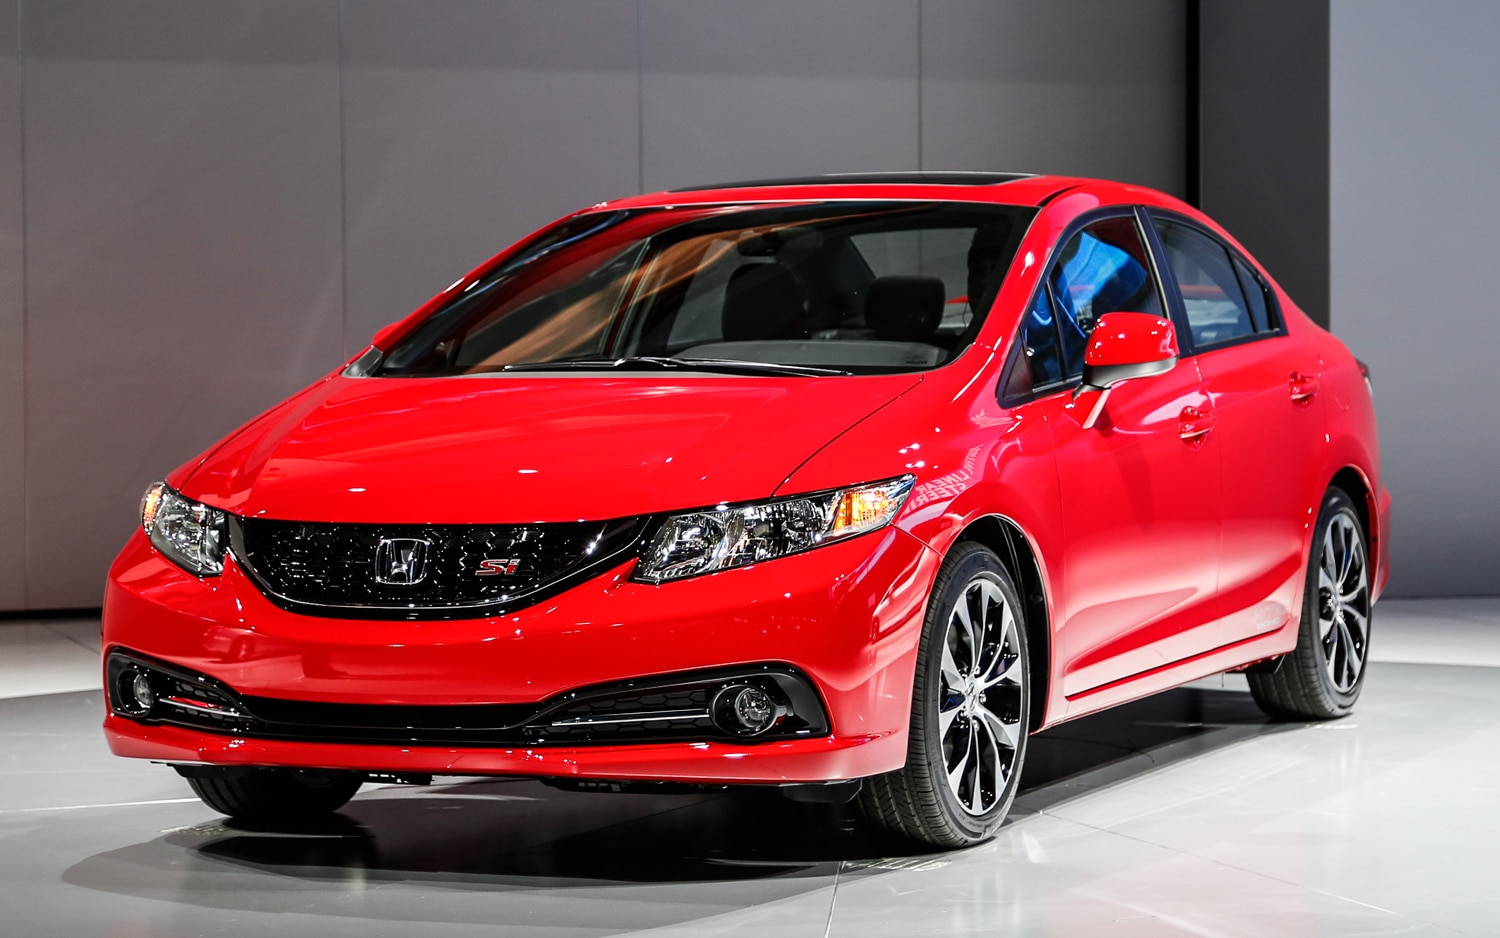 2013 Honda Civic Si Sedan Front Left View1